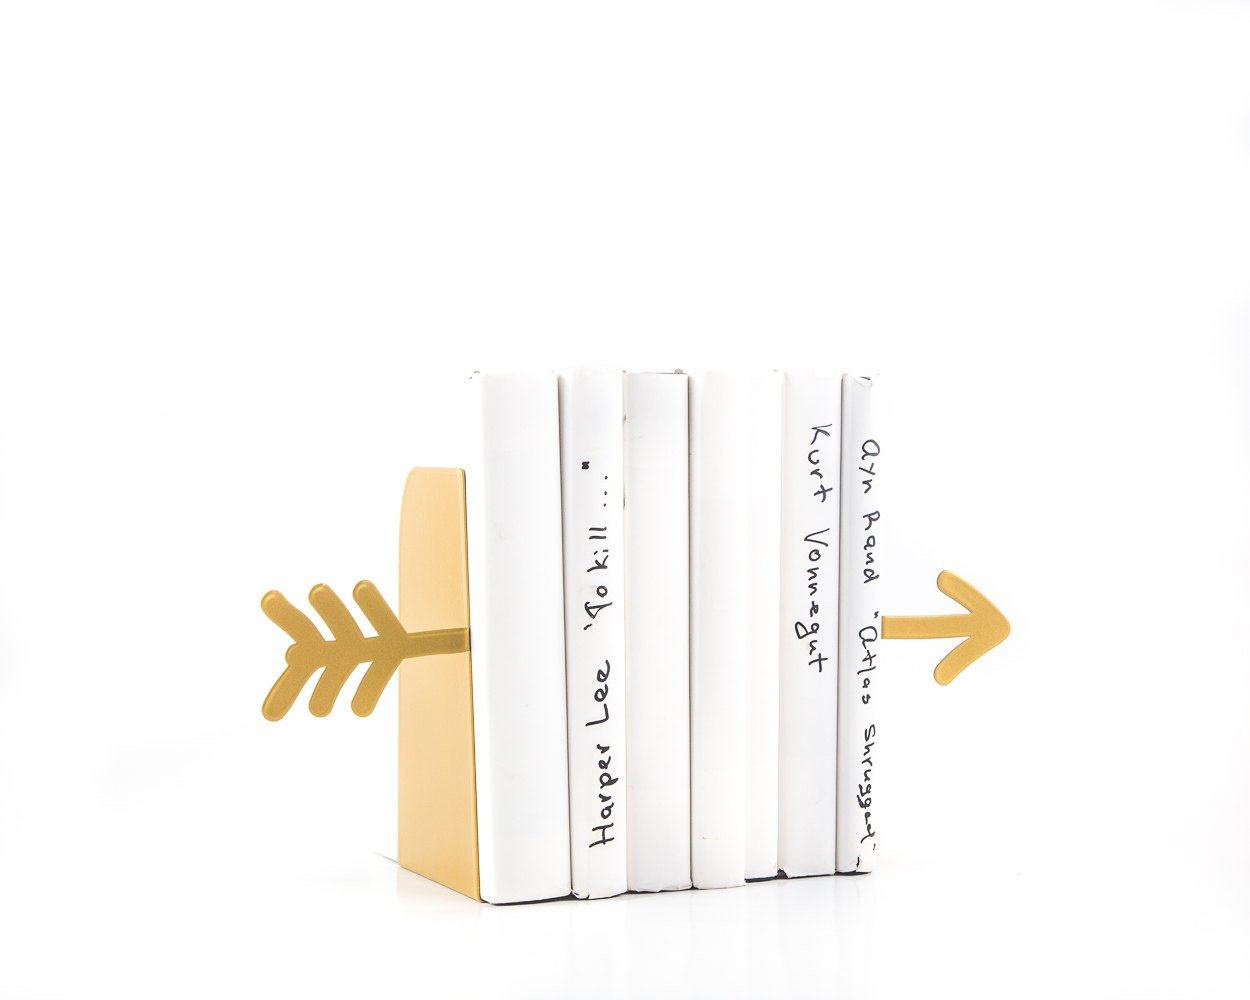 Metal Bookends Golden Arrow // functional decor modern home // present bookworm // FREE SHIPPING // golden decor // novelty birthday gift